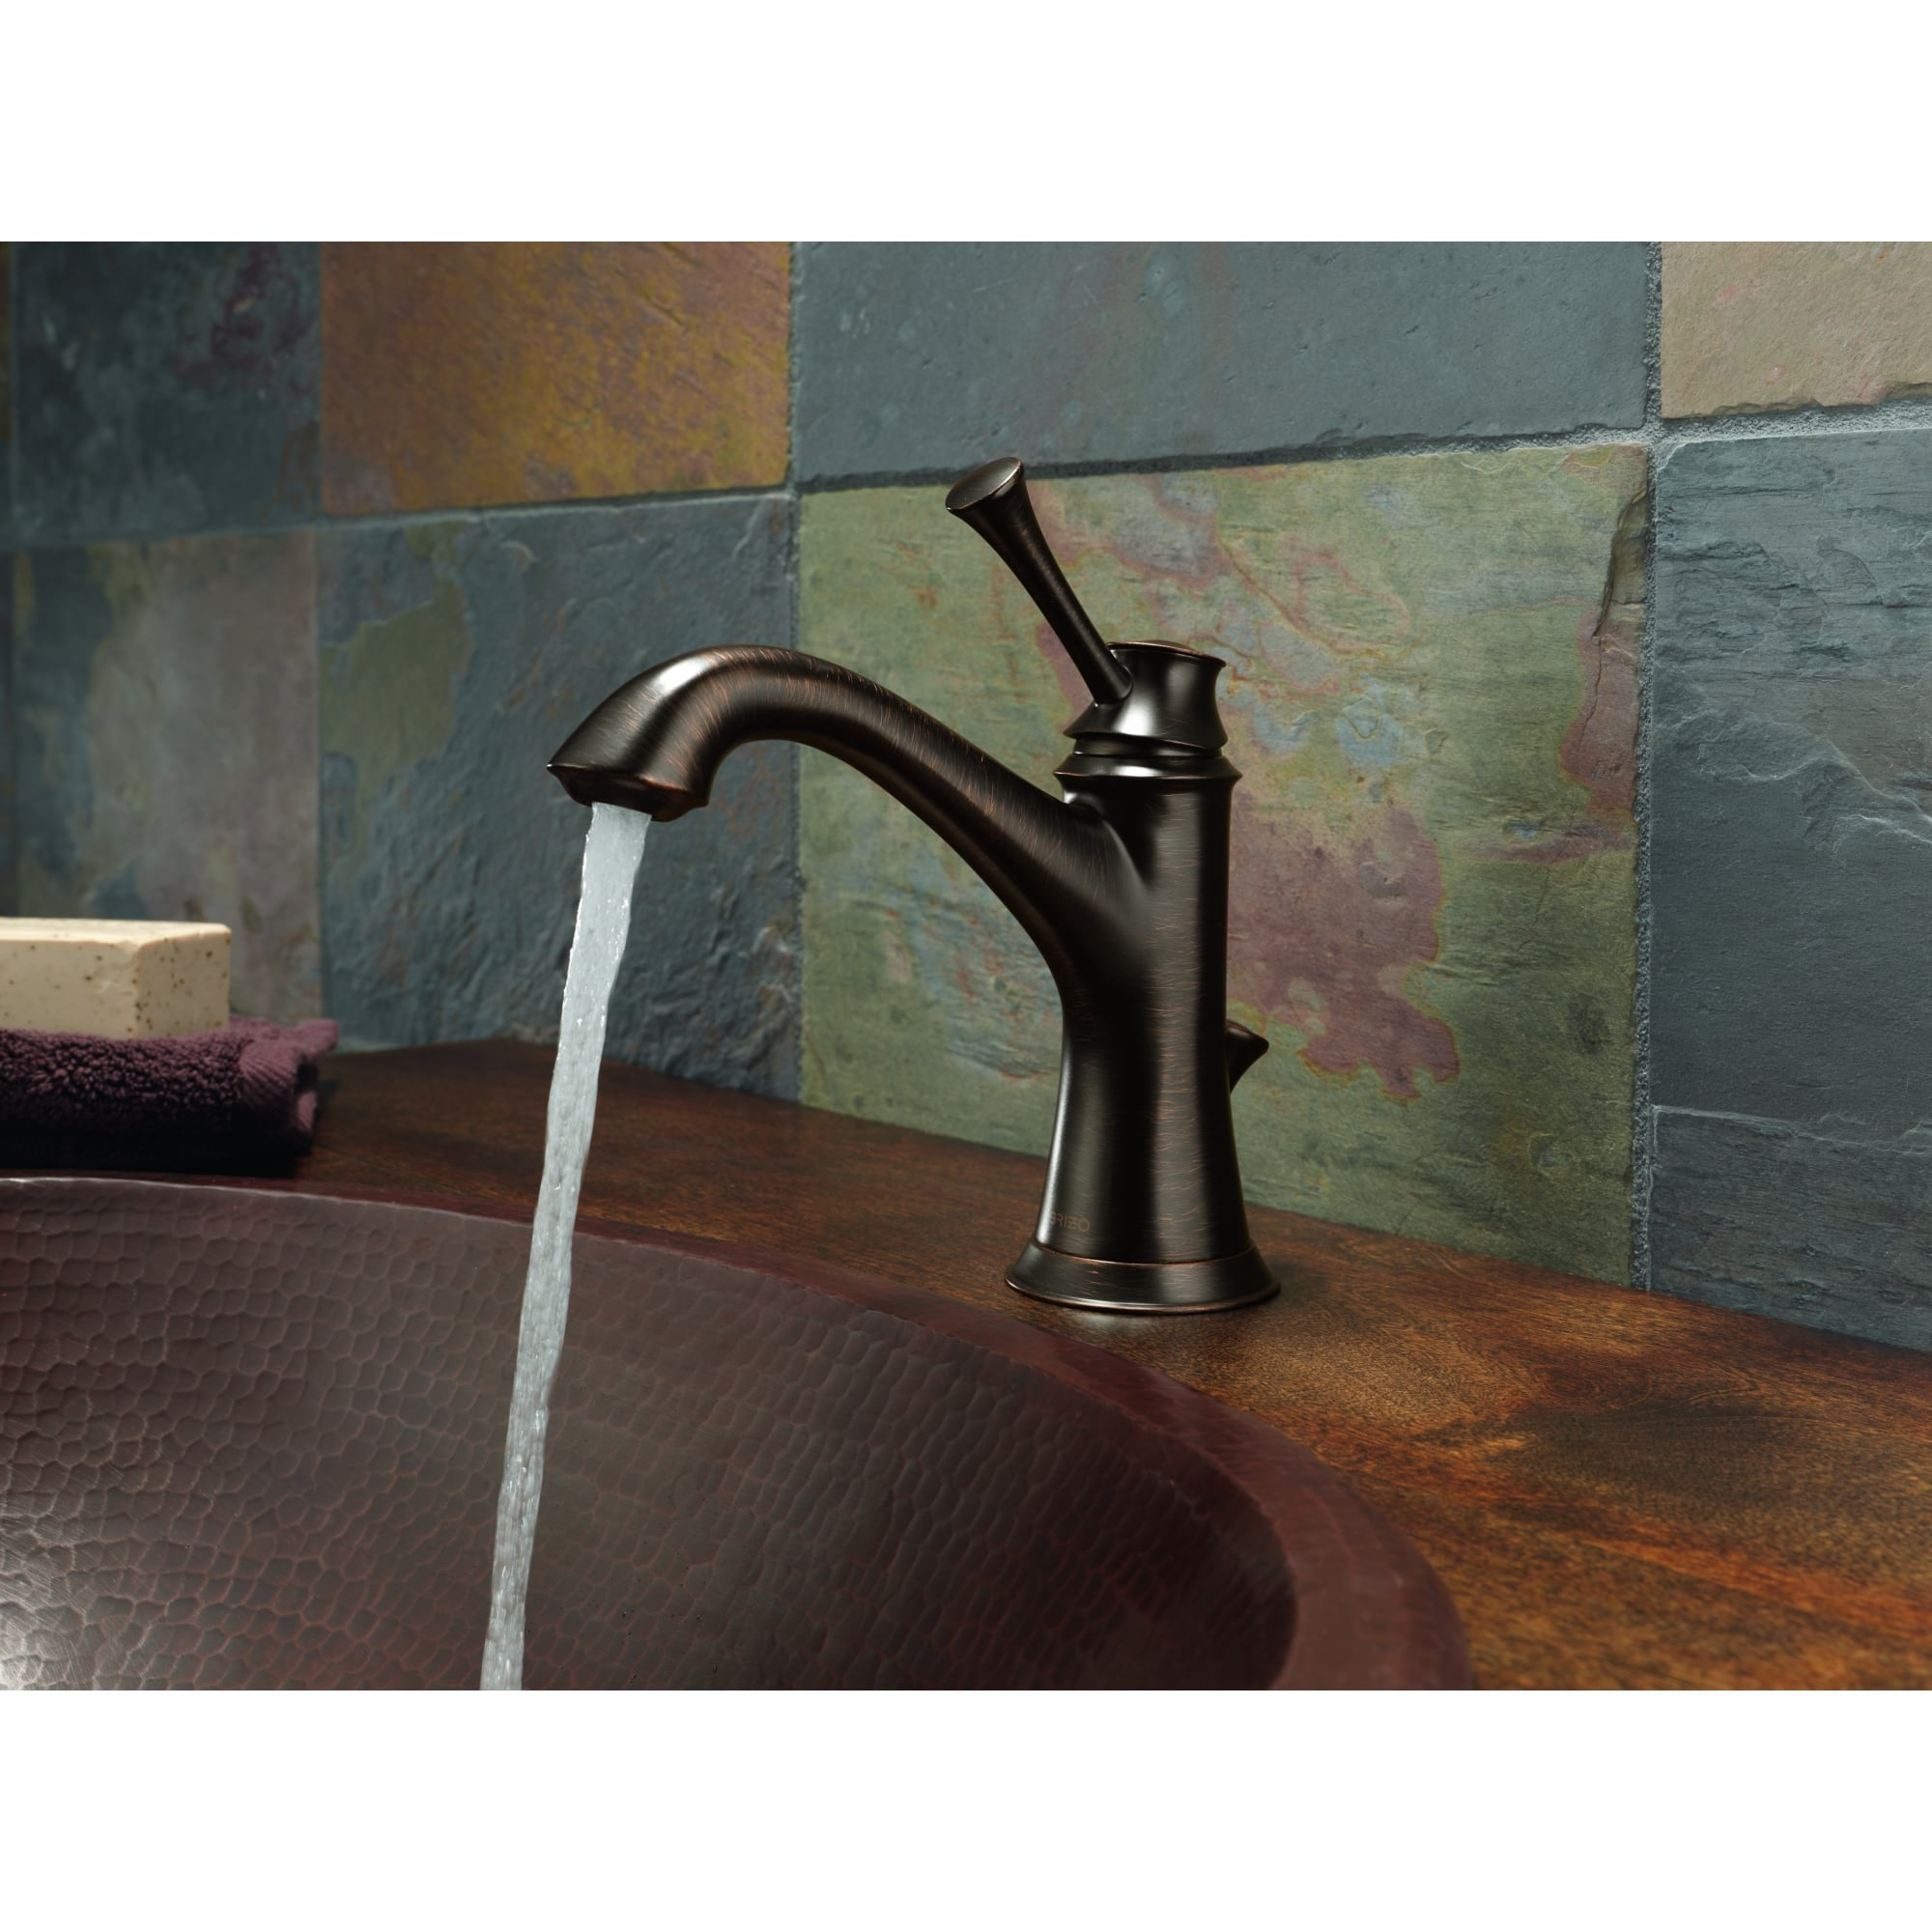 faucets overflow bathroom apollo and with drain kef discontinued single kraususa com hole pop basin faucet oil bronze up set sink rubbed